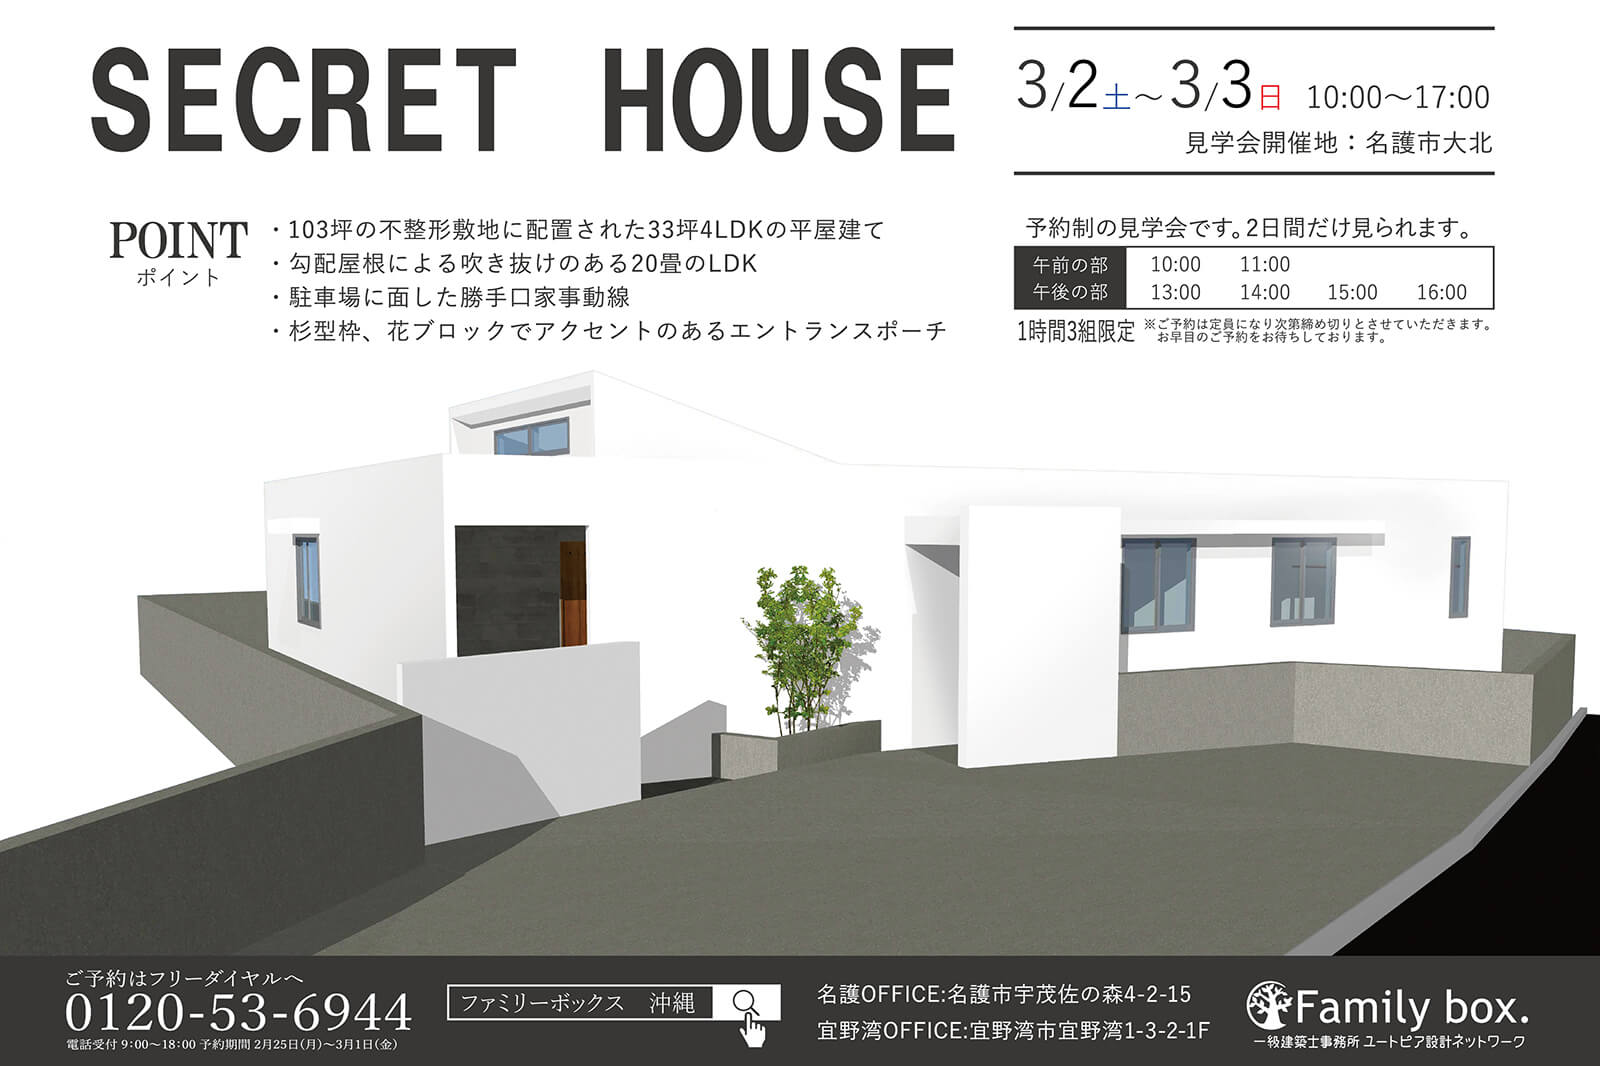 SECRET HOUSE 2019 MARCH in 名護市